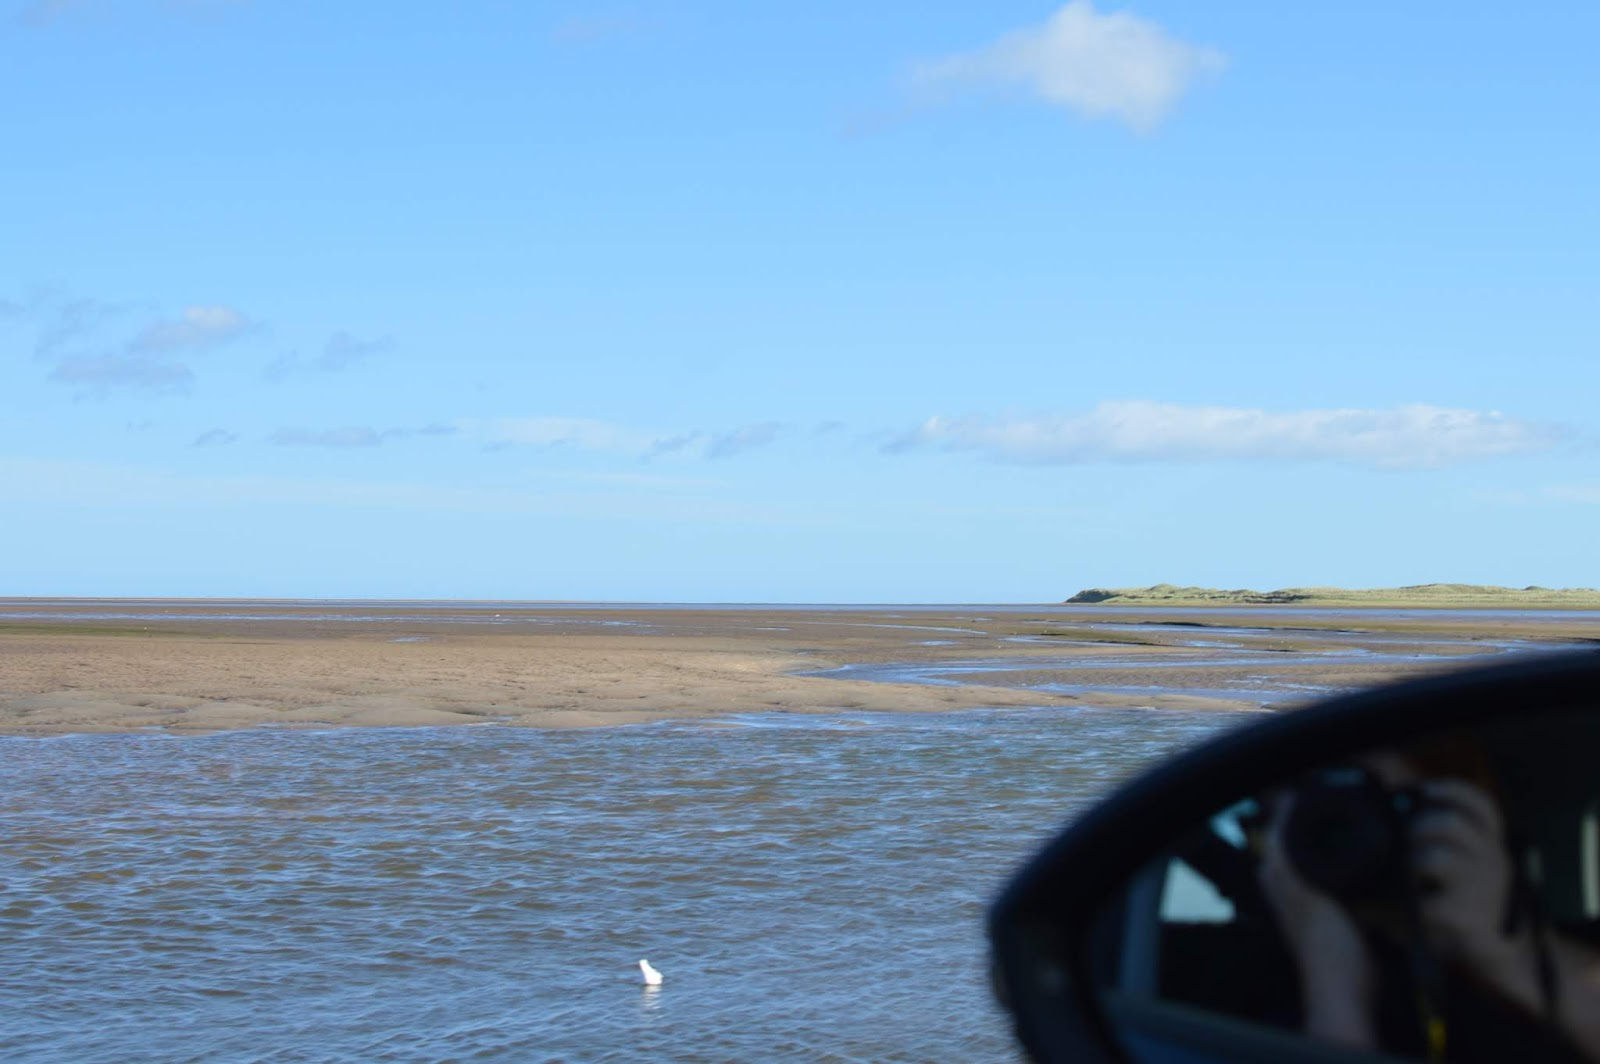 The Holy Island of Lindisfarne, Northumberland - what to see and do during a half day visit - view of the drive over the causeway